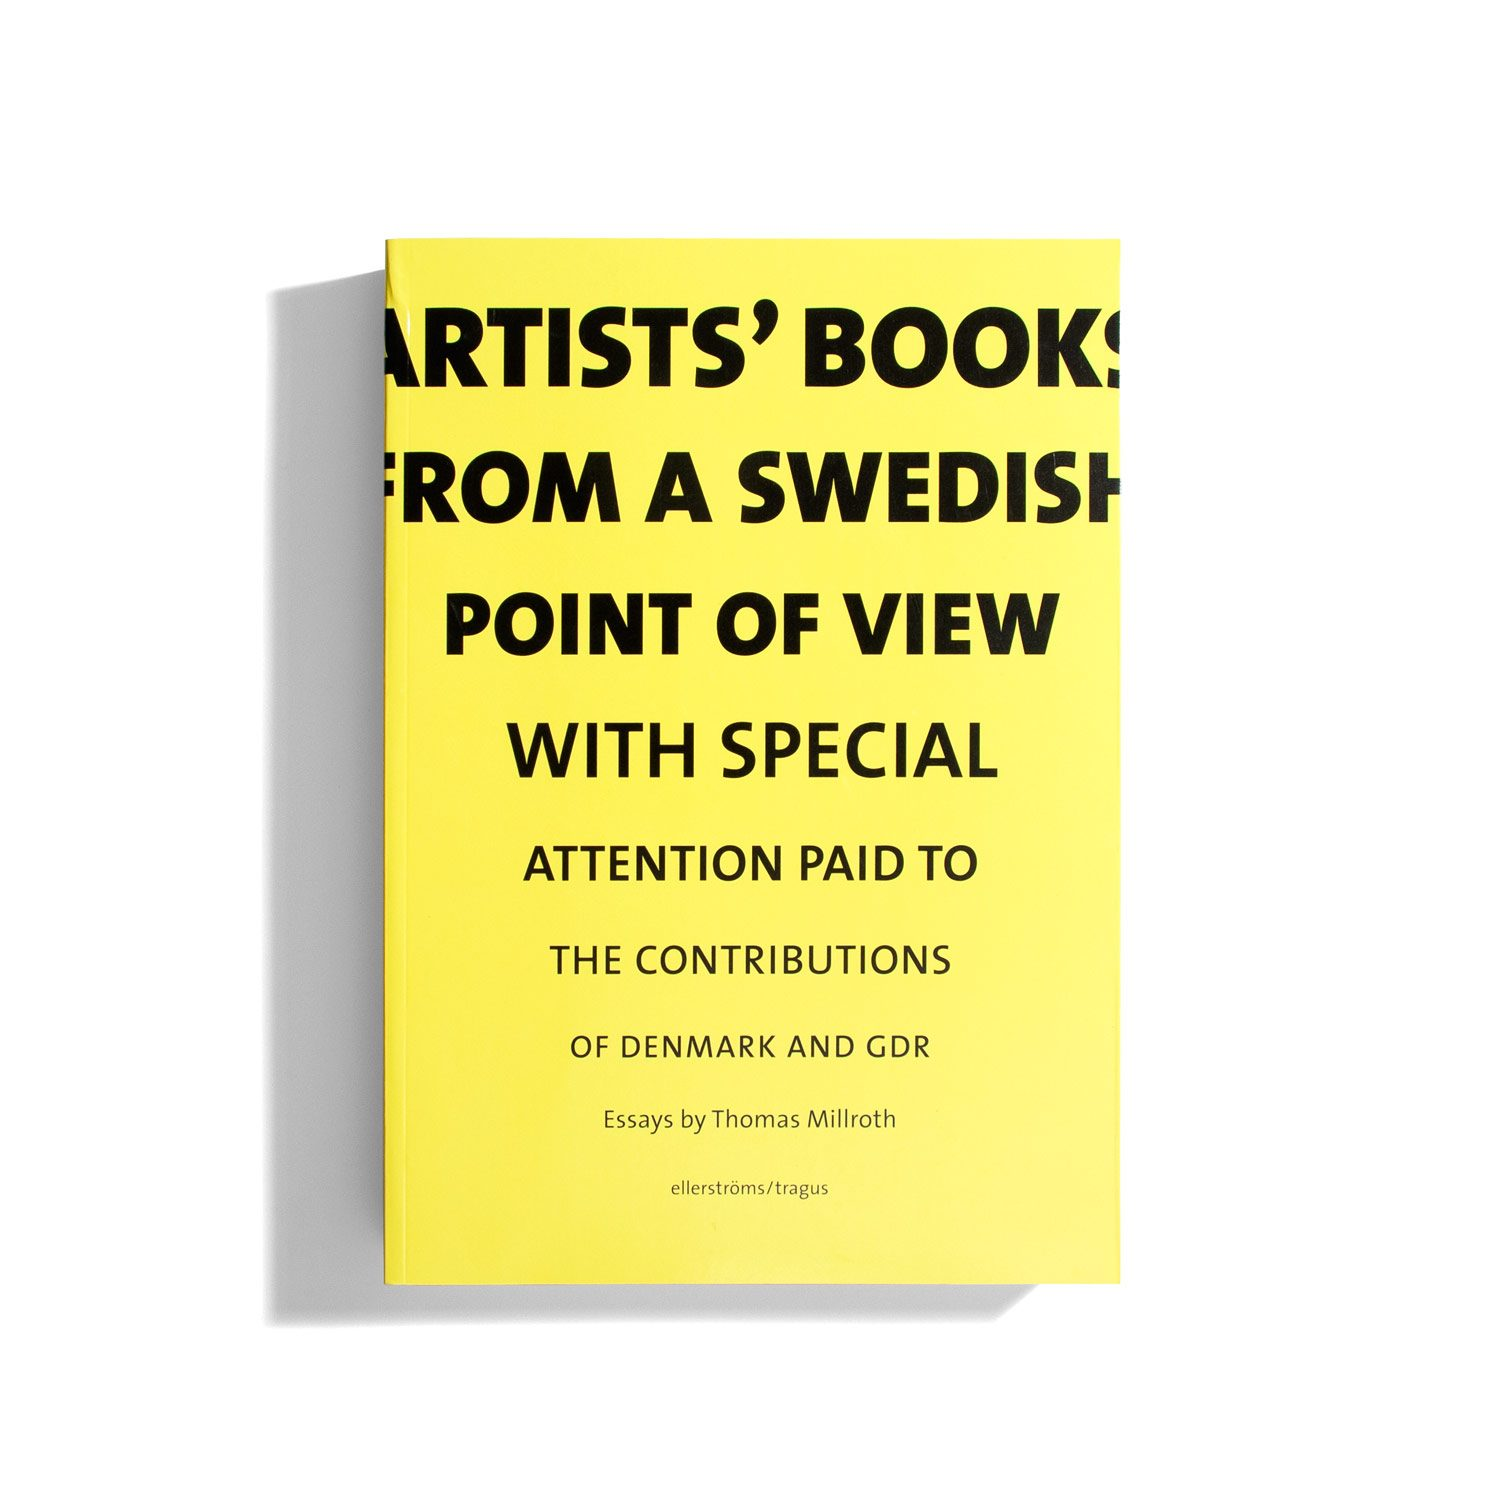 Artist's books from a Swedish point of view